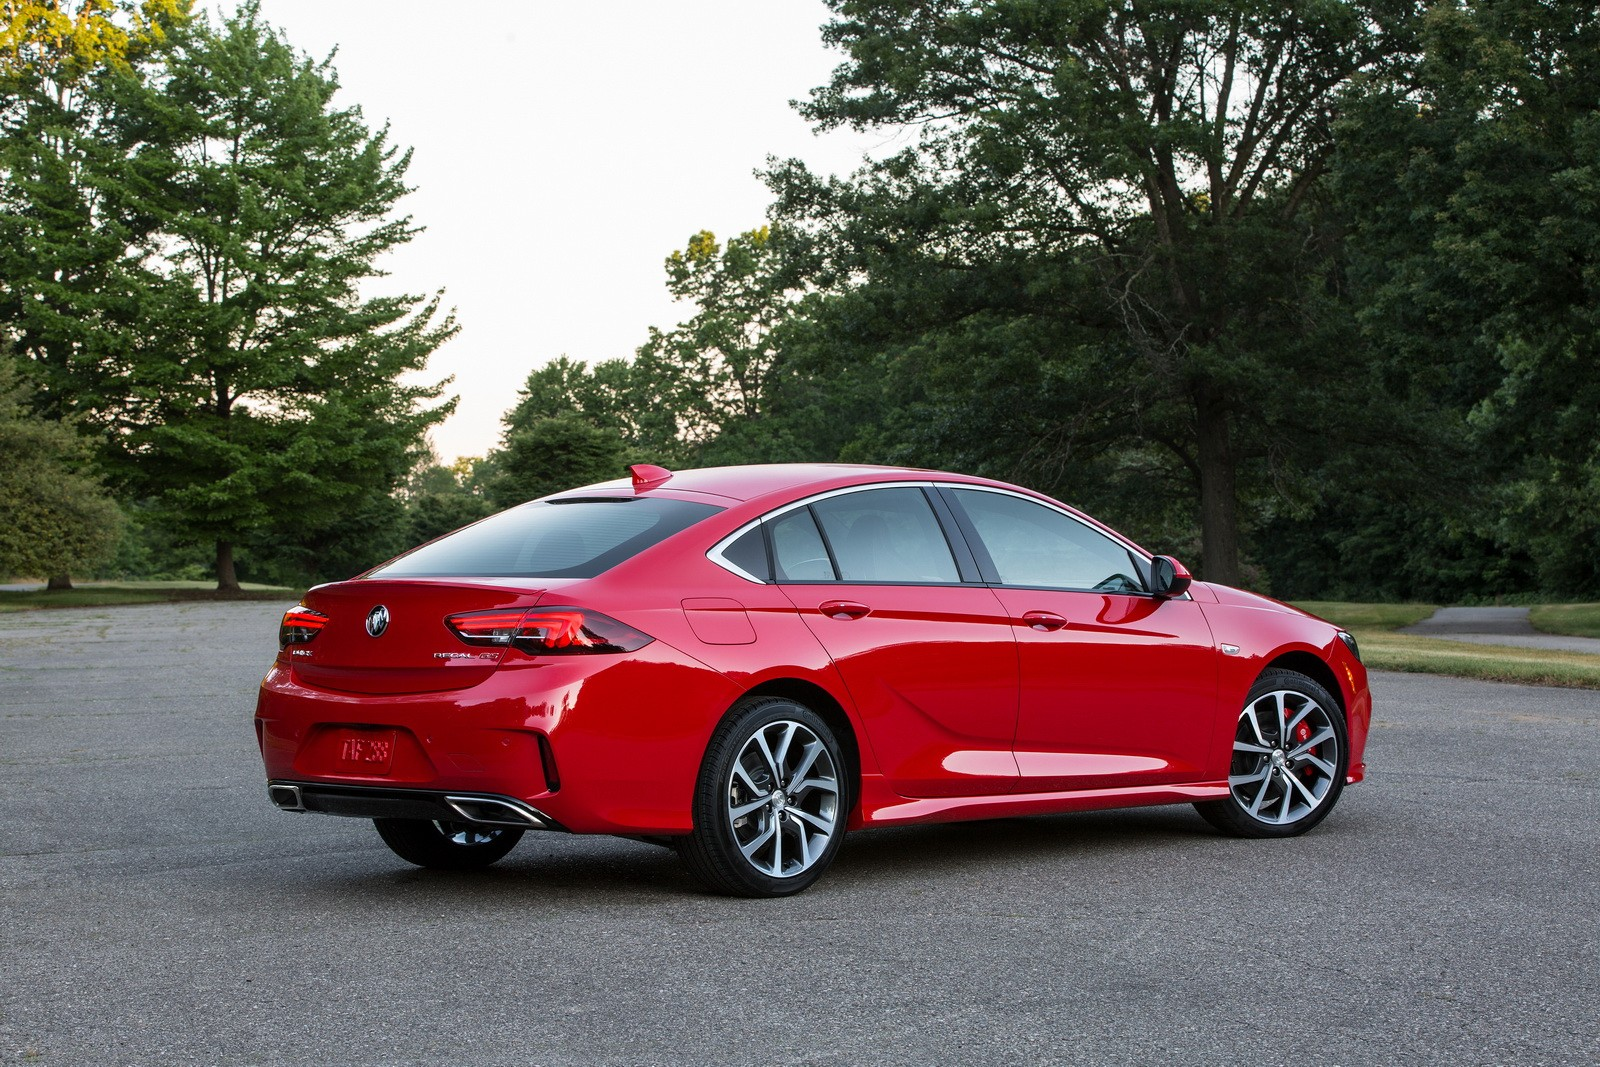 2018 buick regal gs revealed has 310 hp 3 6 liter v6 and awd autoevolution. Black Bedroom Furniture Sets. Home Design Ideas